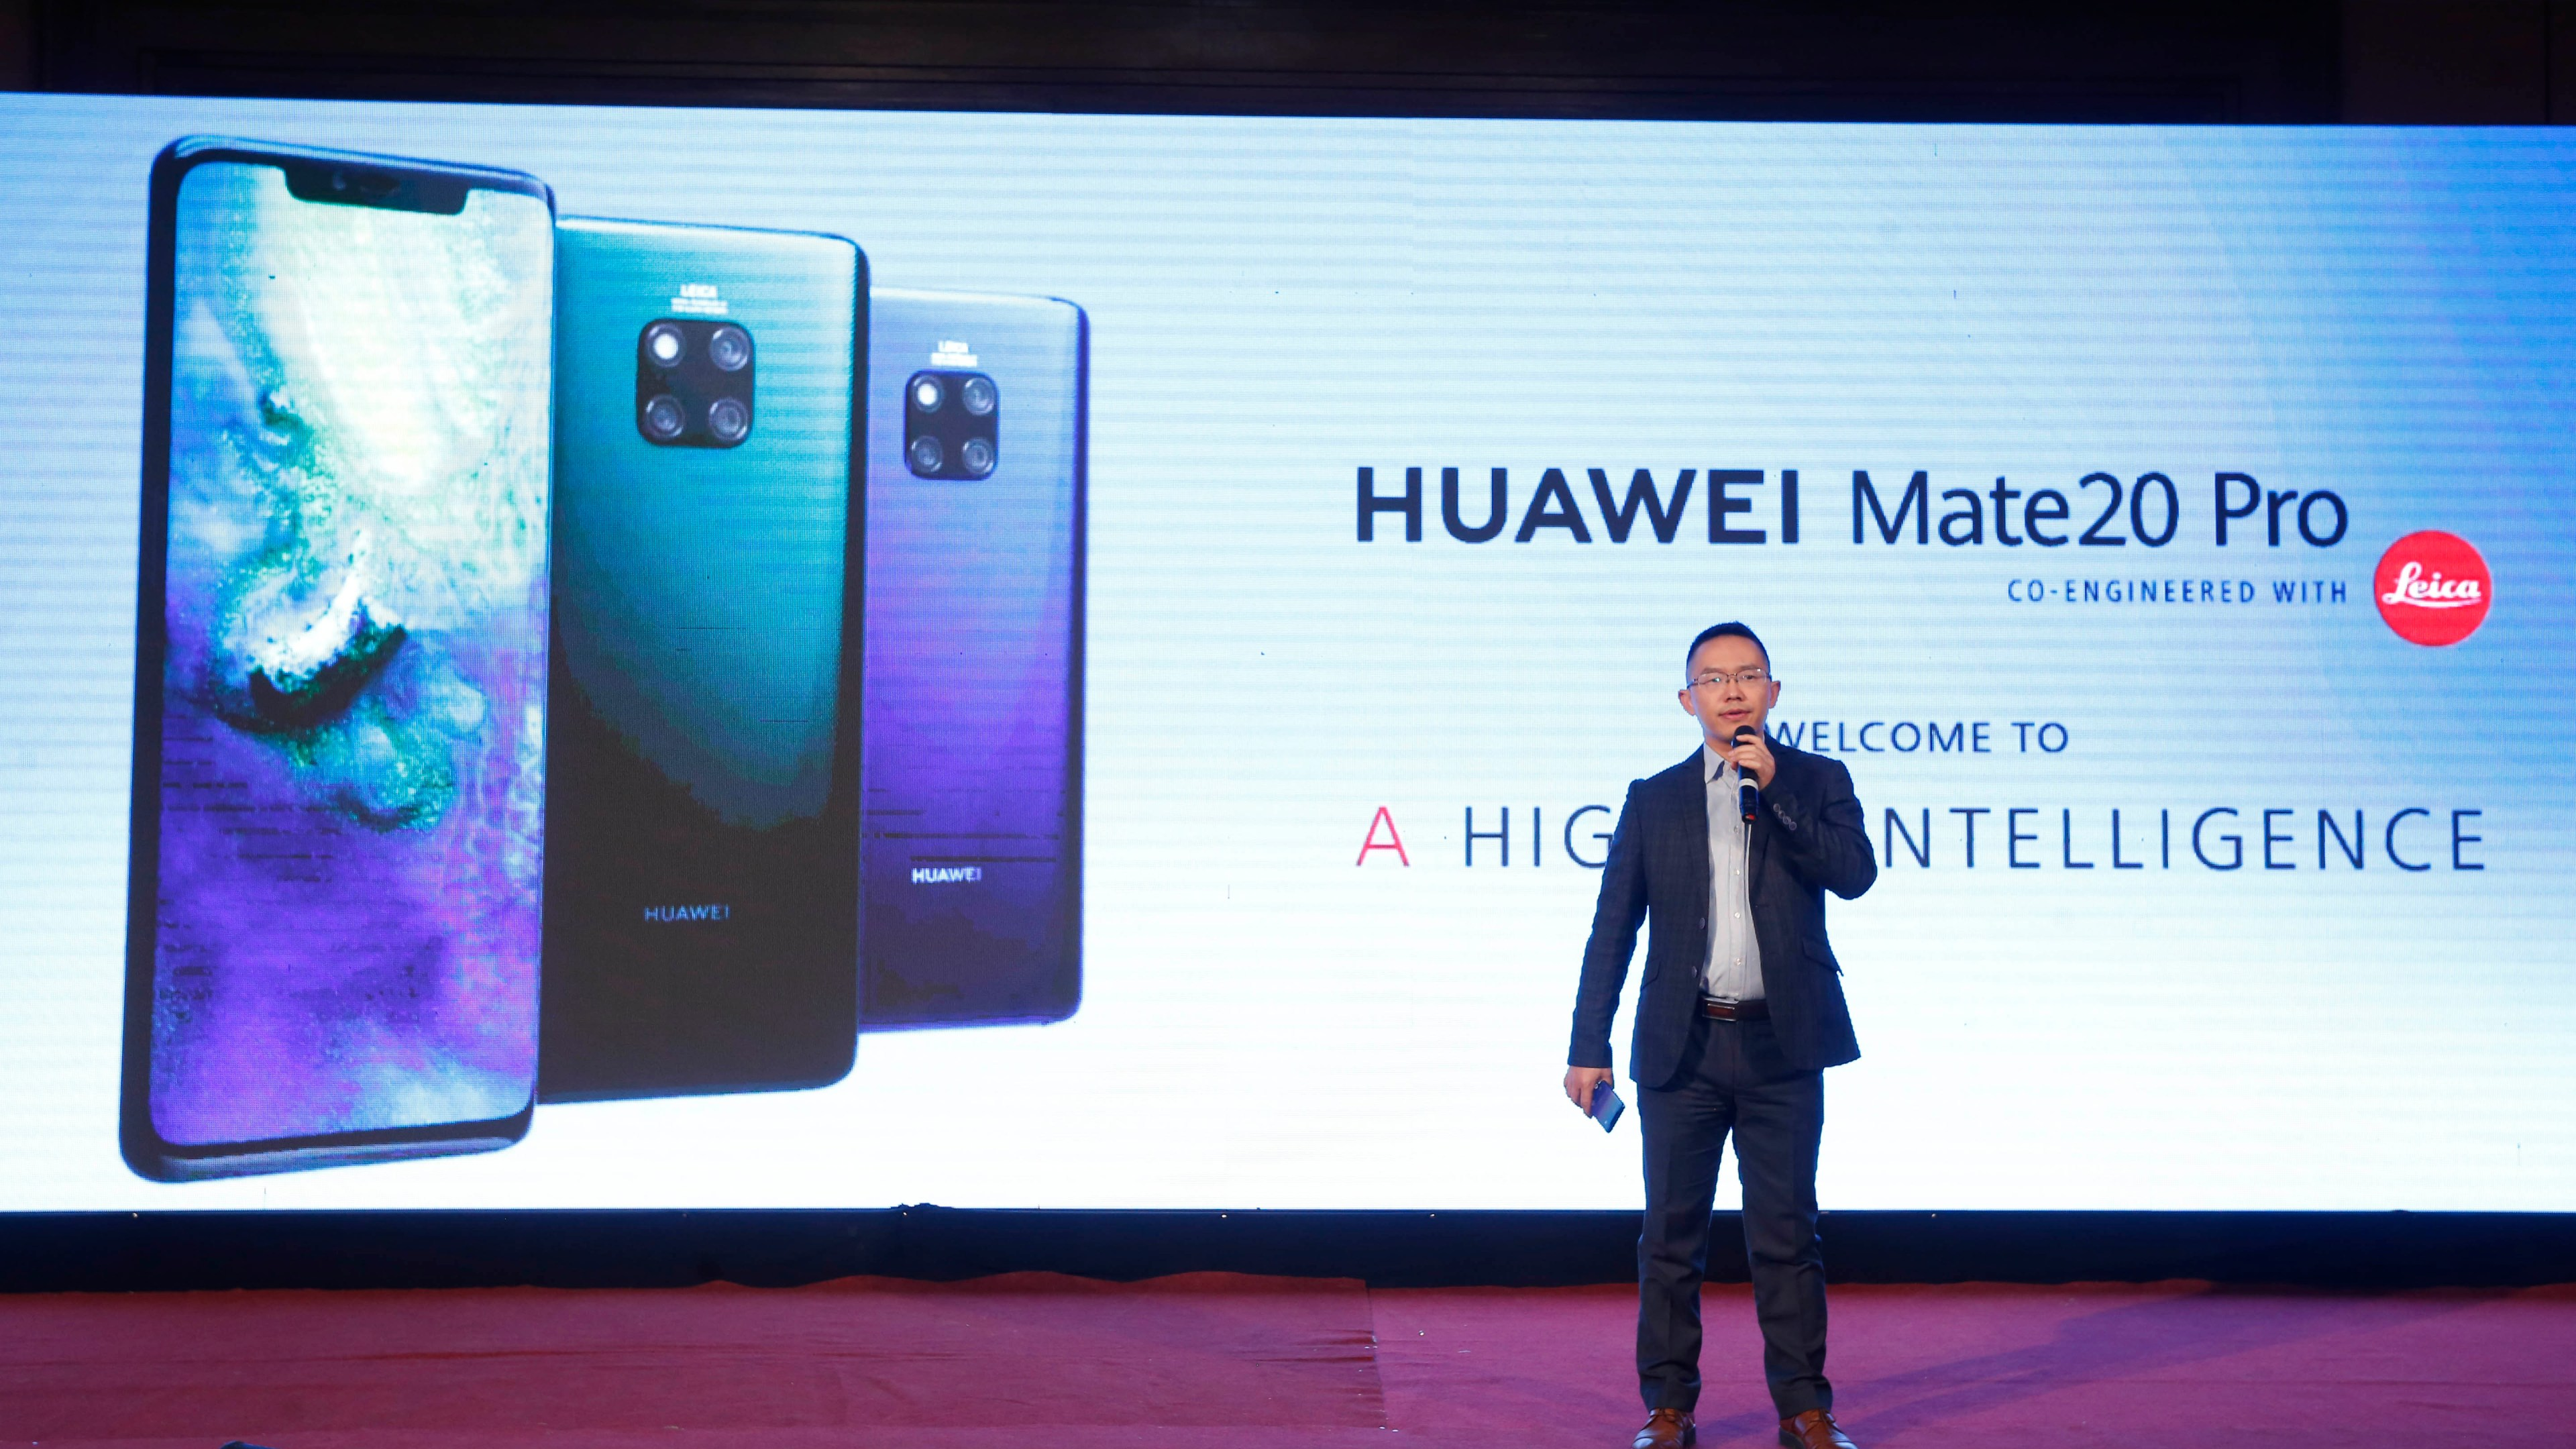 Huawei Mate 20 Price in Nepal